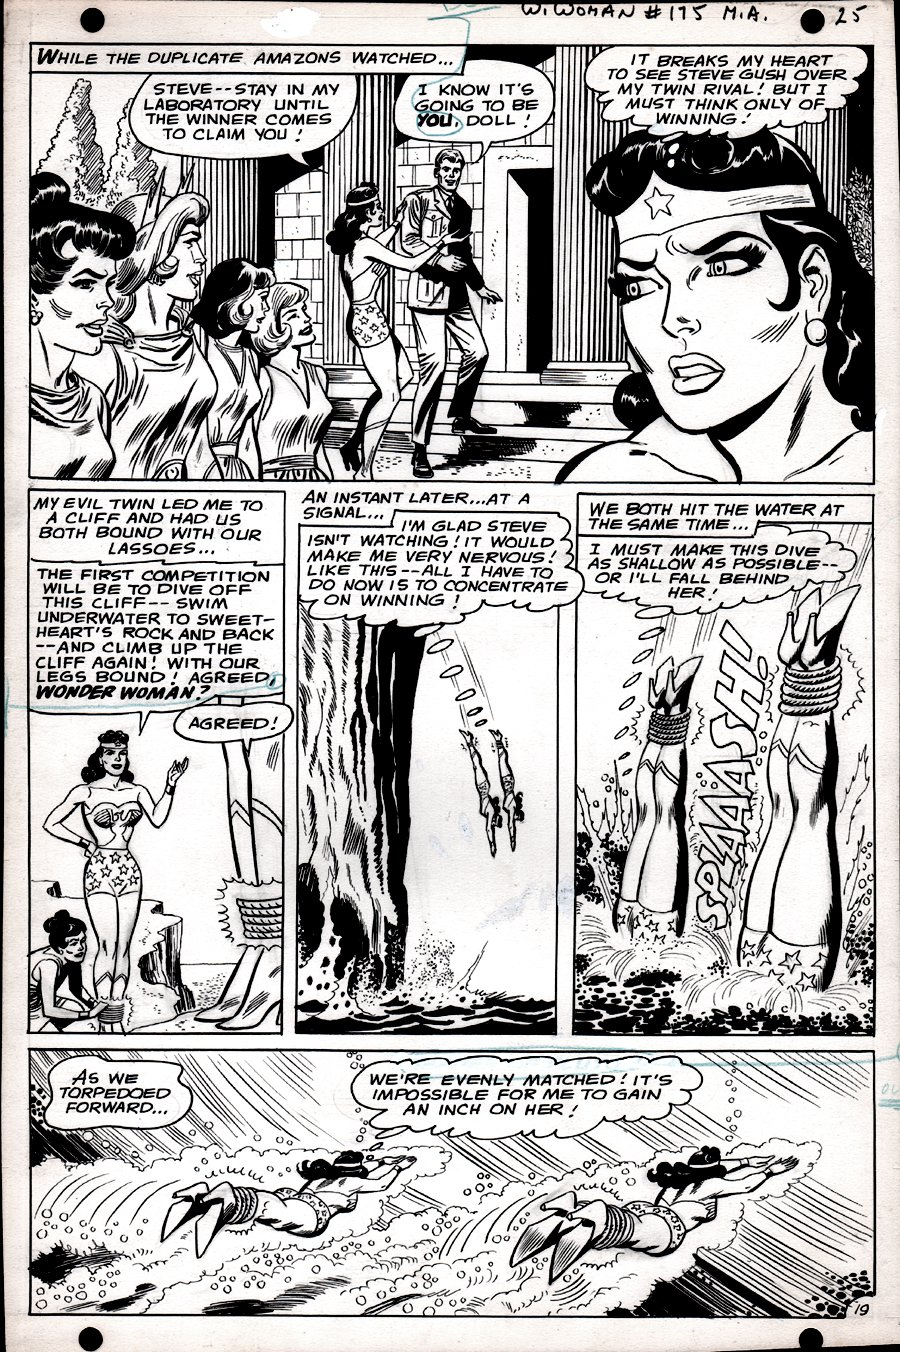 Wonder Woman #175 p 19  (SILVER AGE, WONDER WOMAN BATTLES WONDER WOMAN!) 1967